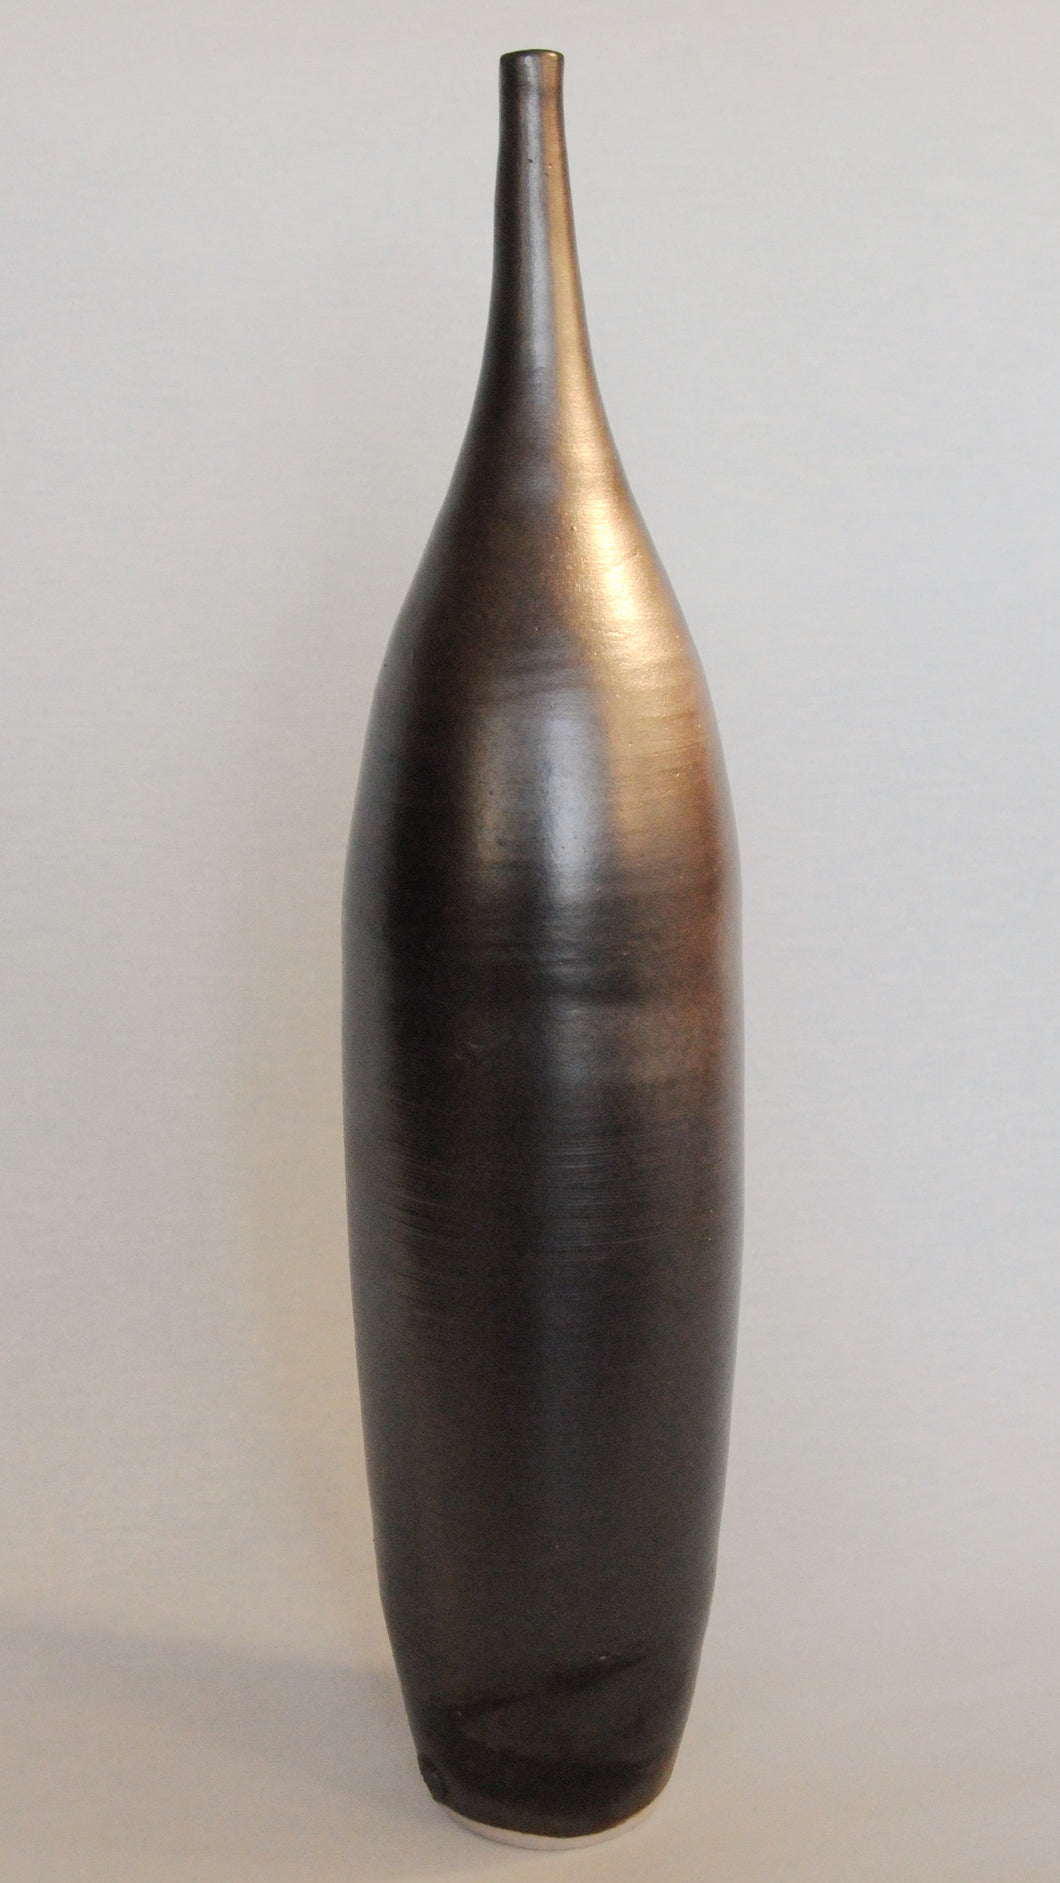 Bottle form - matt black